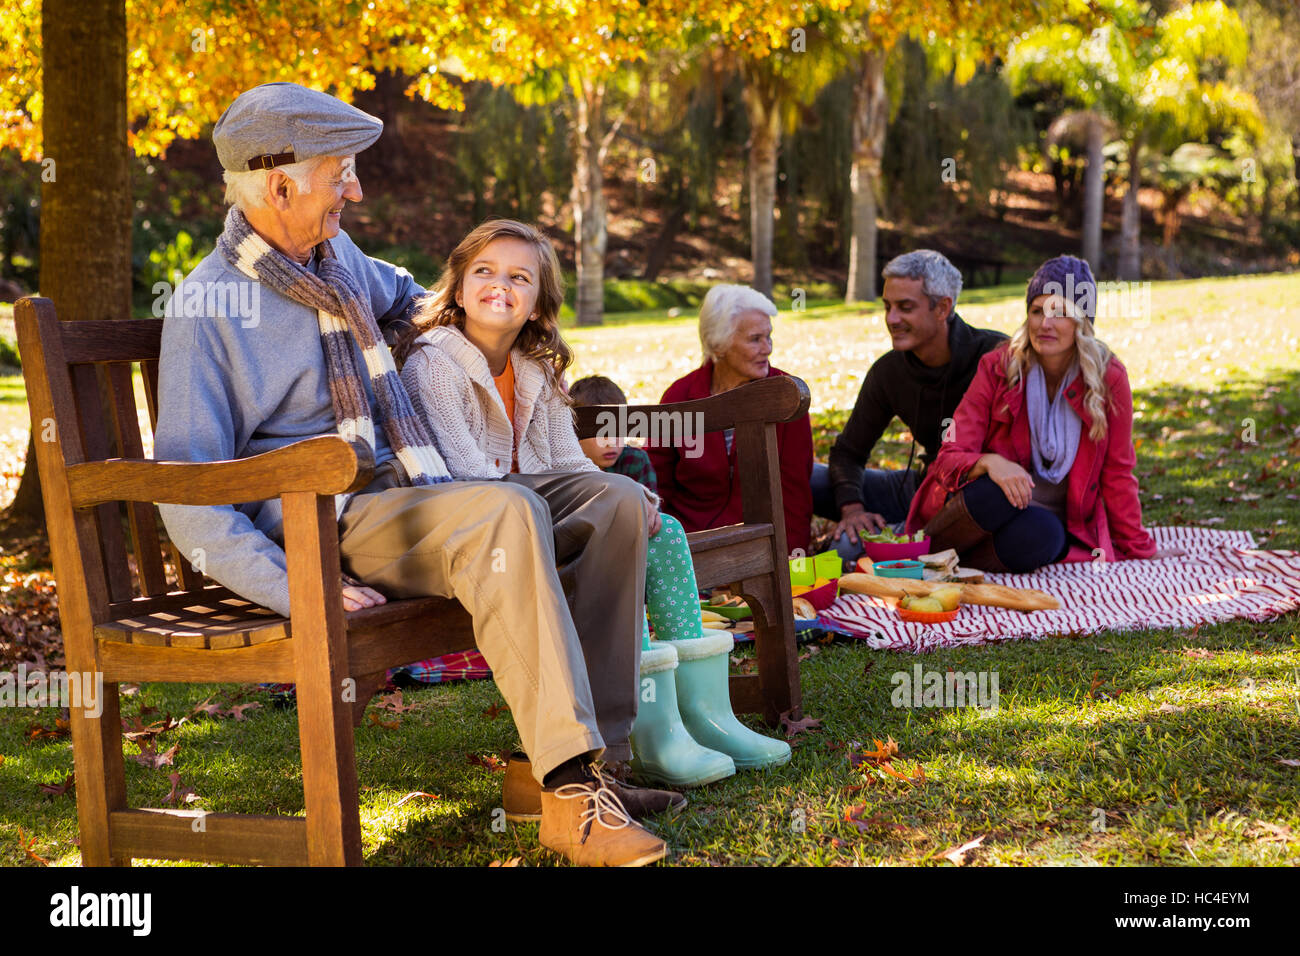 Family picnicking and the grandfather laughing with his grand daughter on a bench - Stock Image